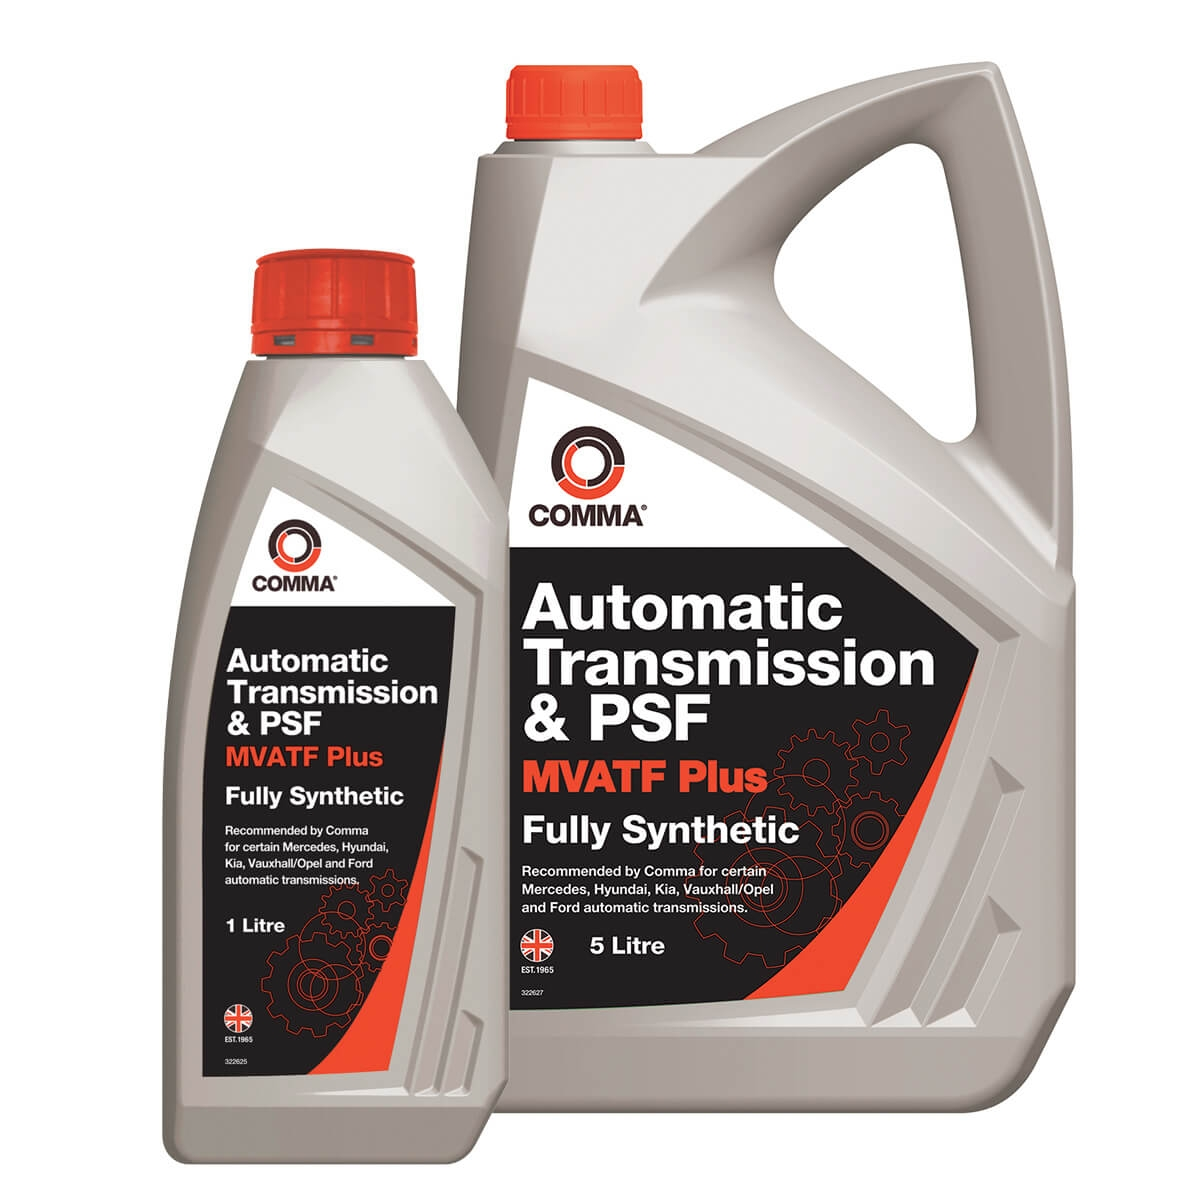 FIAT DUNA Automatic Transmission Oil